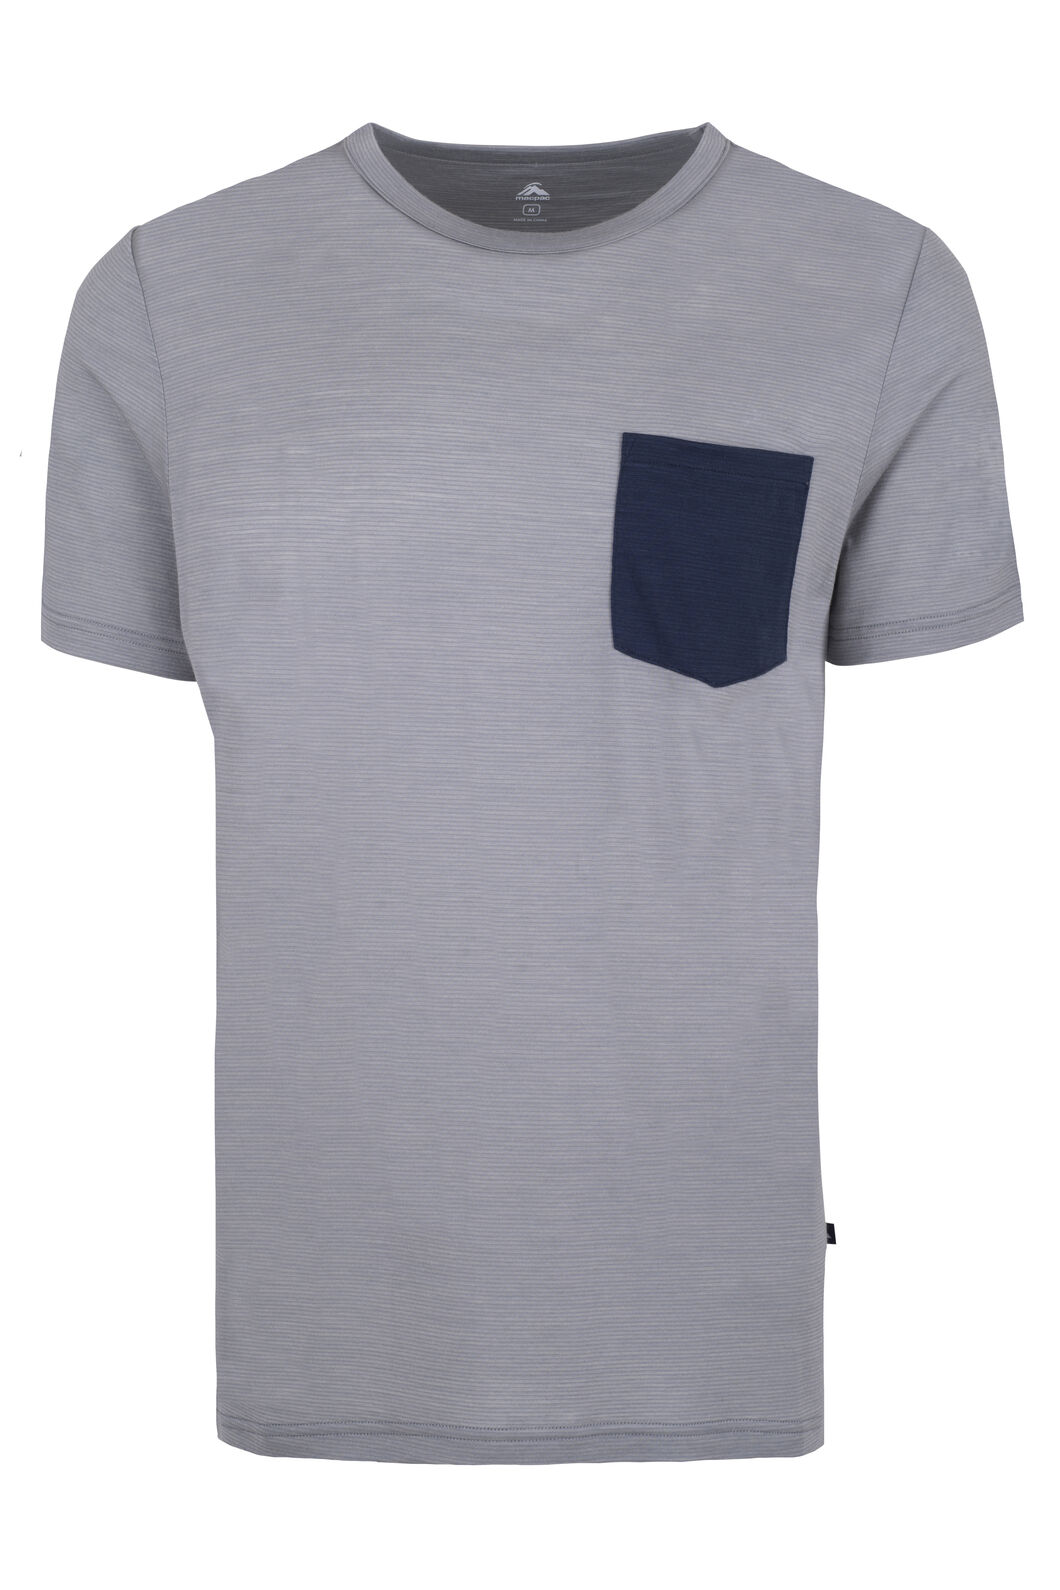 Macpac Merino Blend Travel Tee — Men's, Mid Grey, hi-res